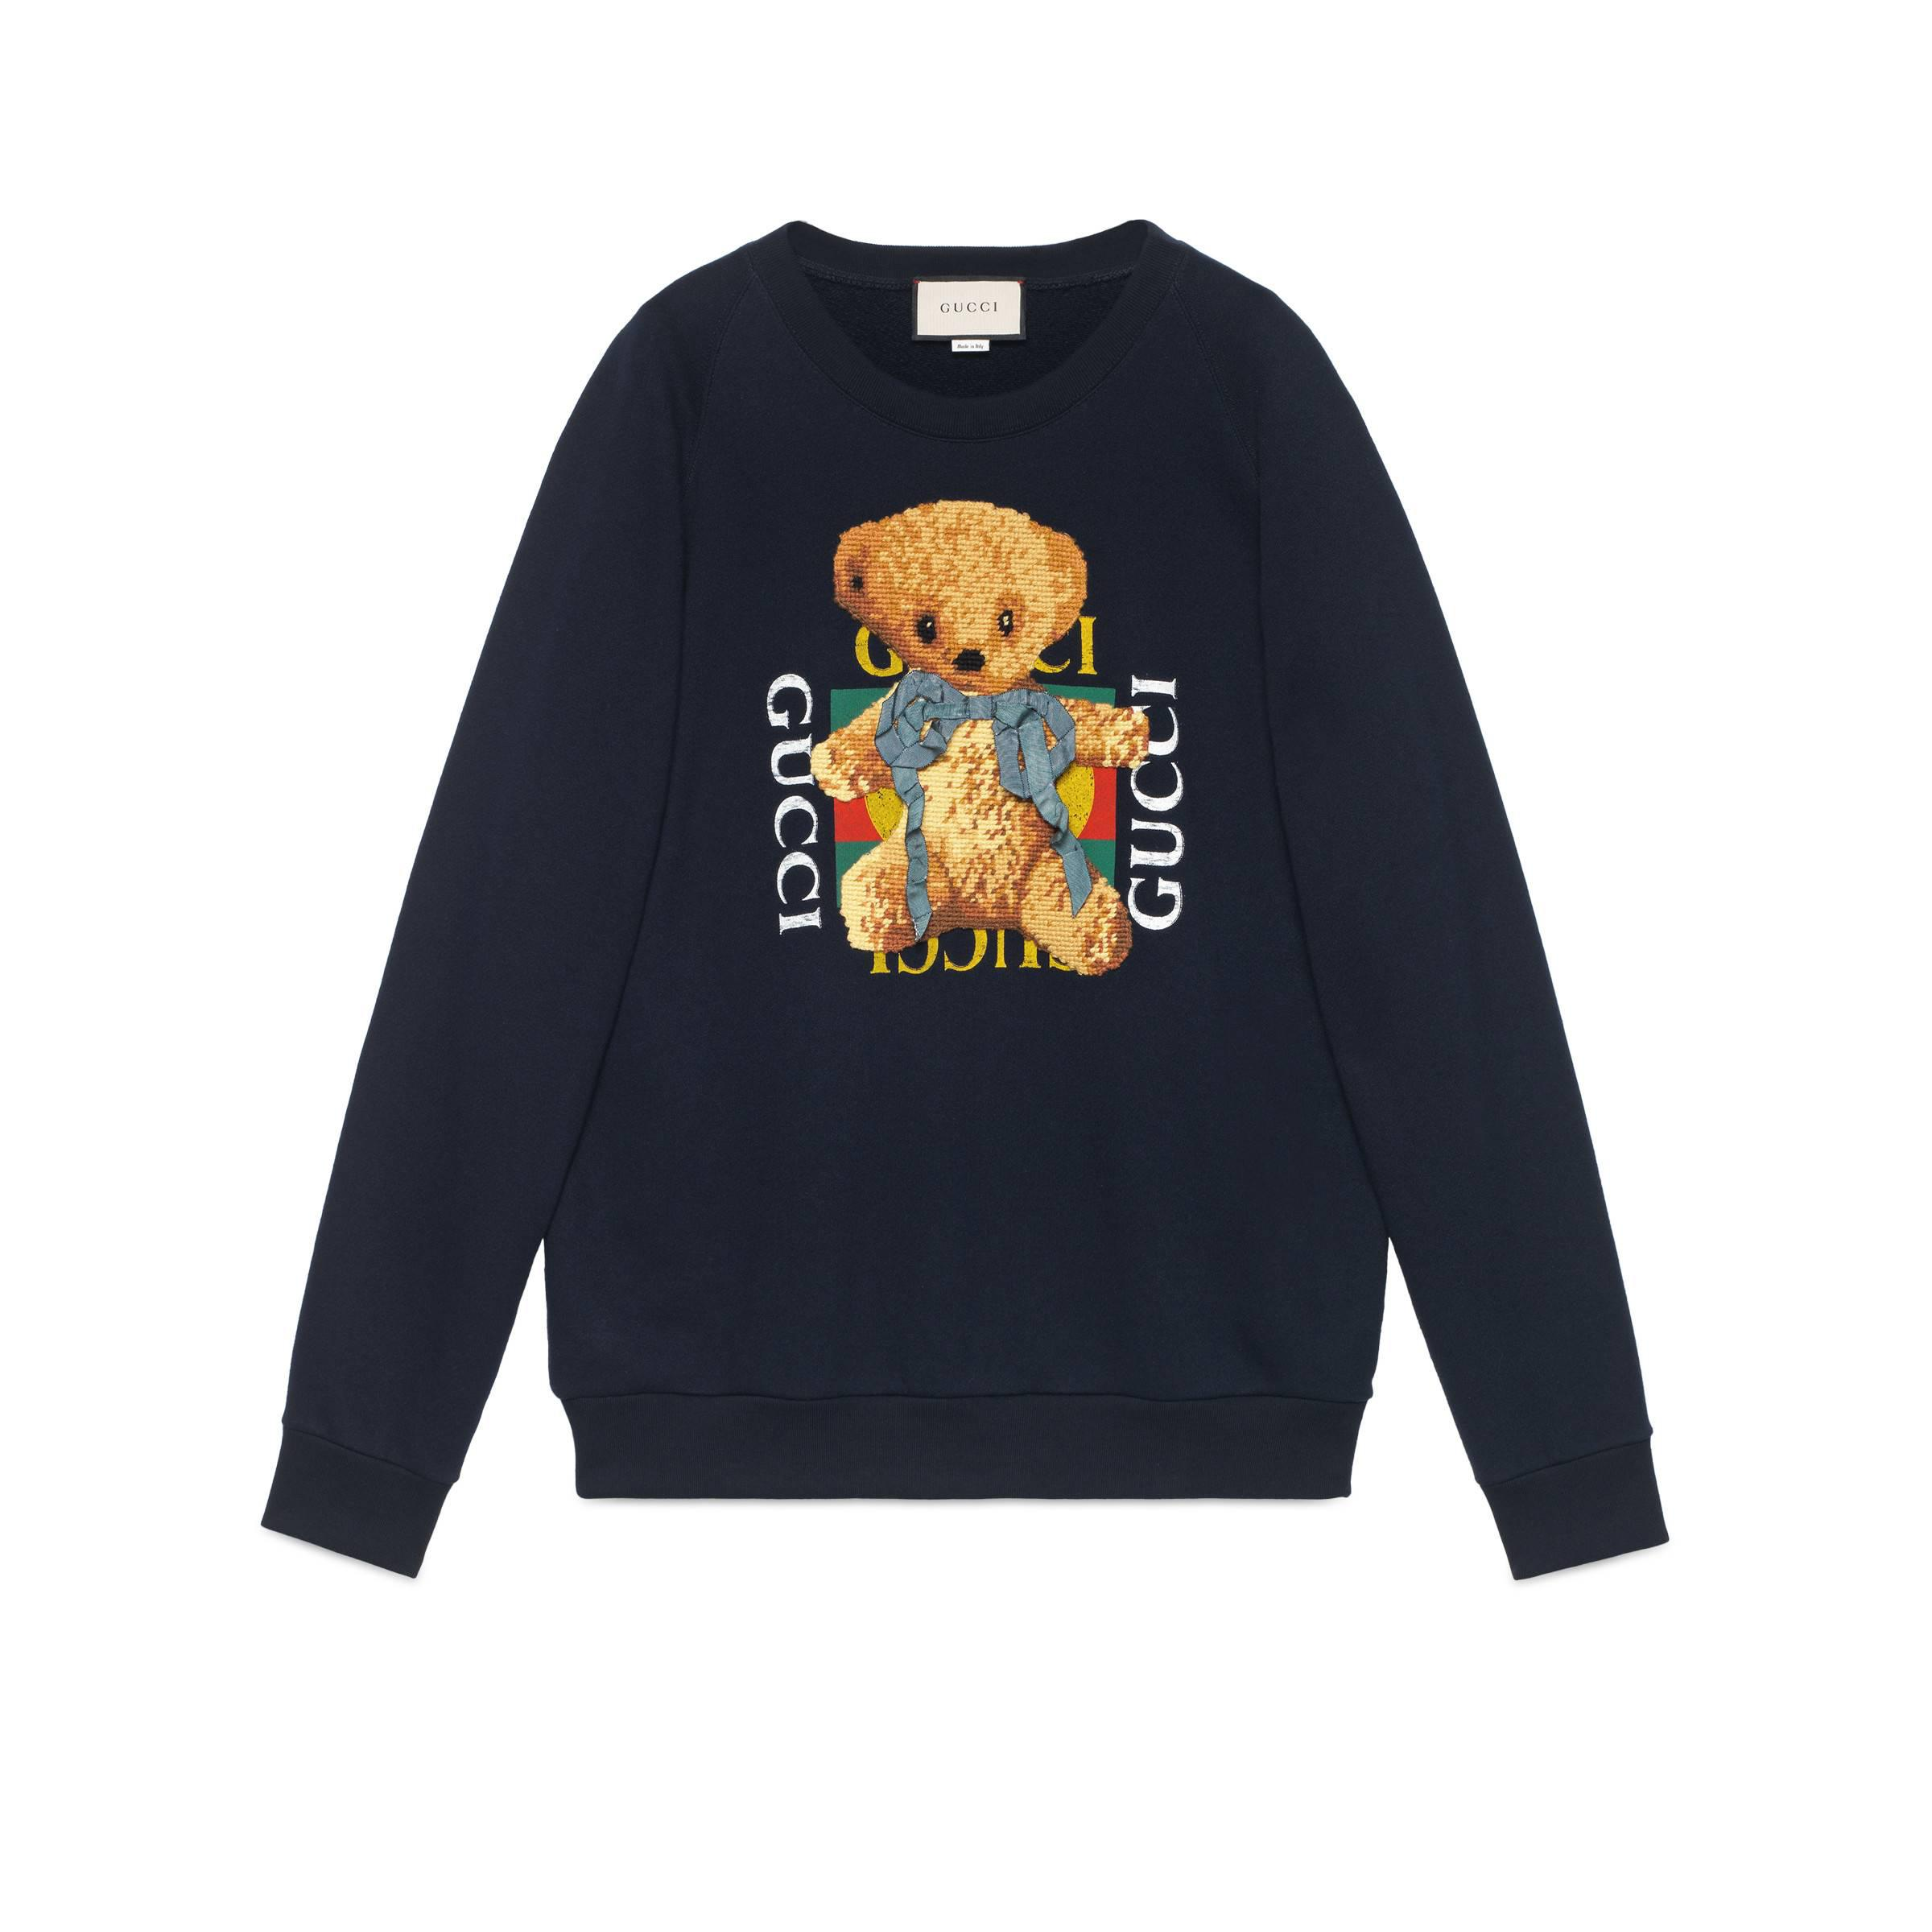 8f3d025f9d3 Lyst - Gucci Oversize Sweatshirt With Logo And Teddy Bear in Blue